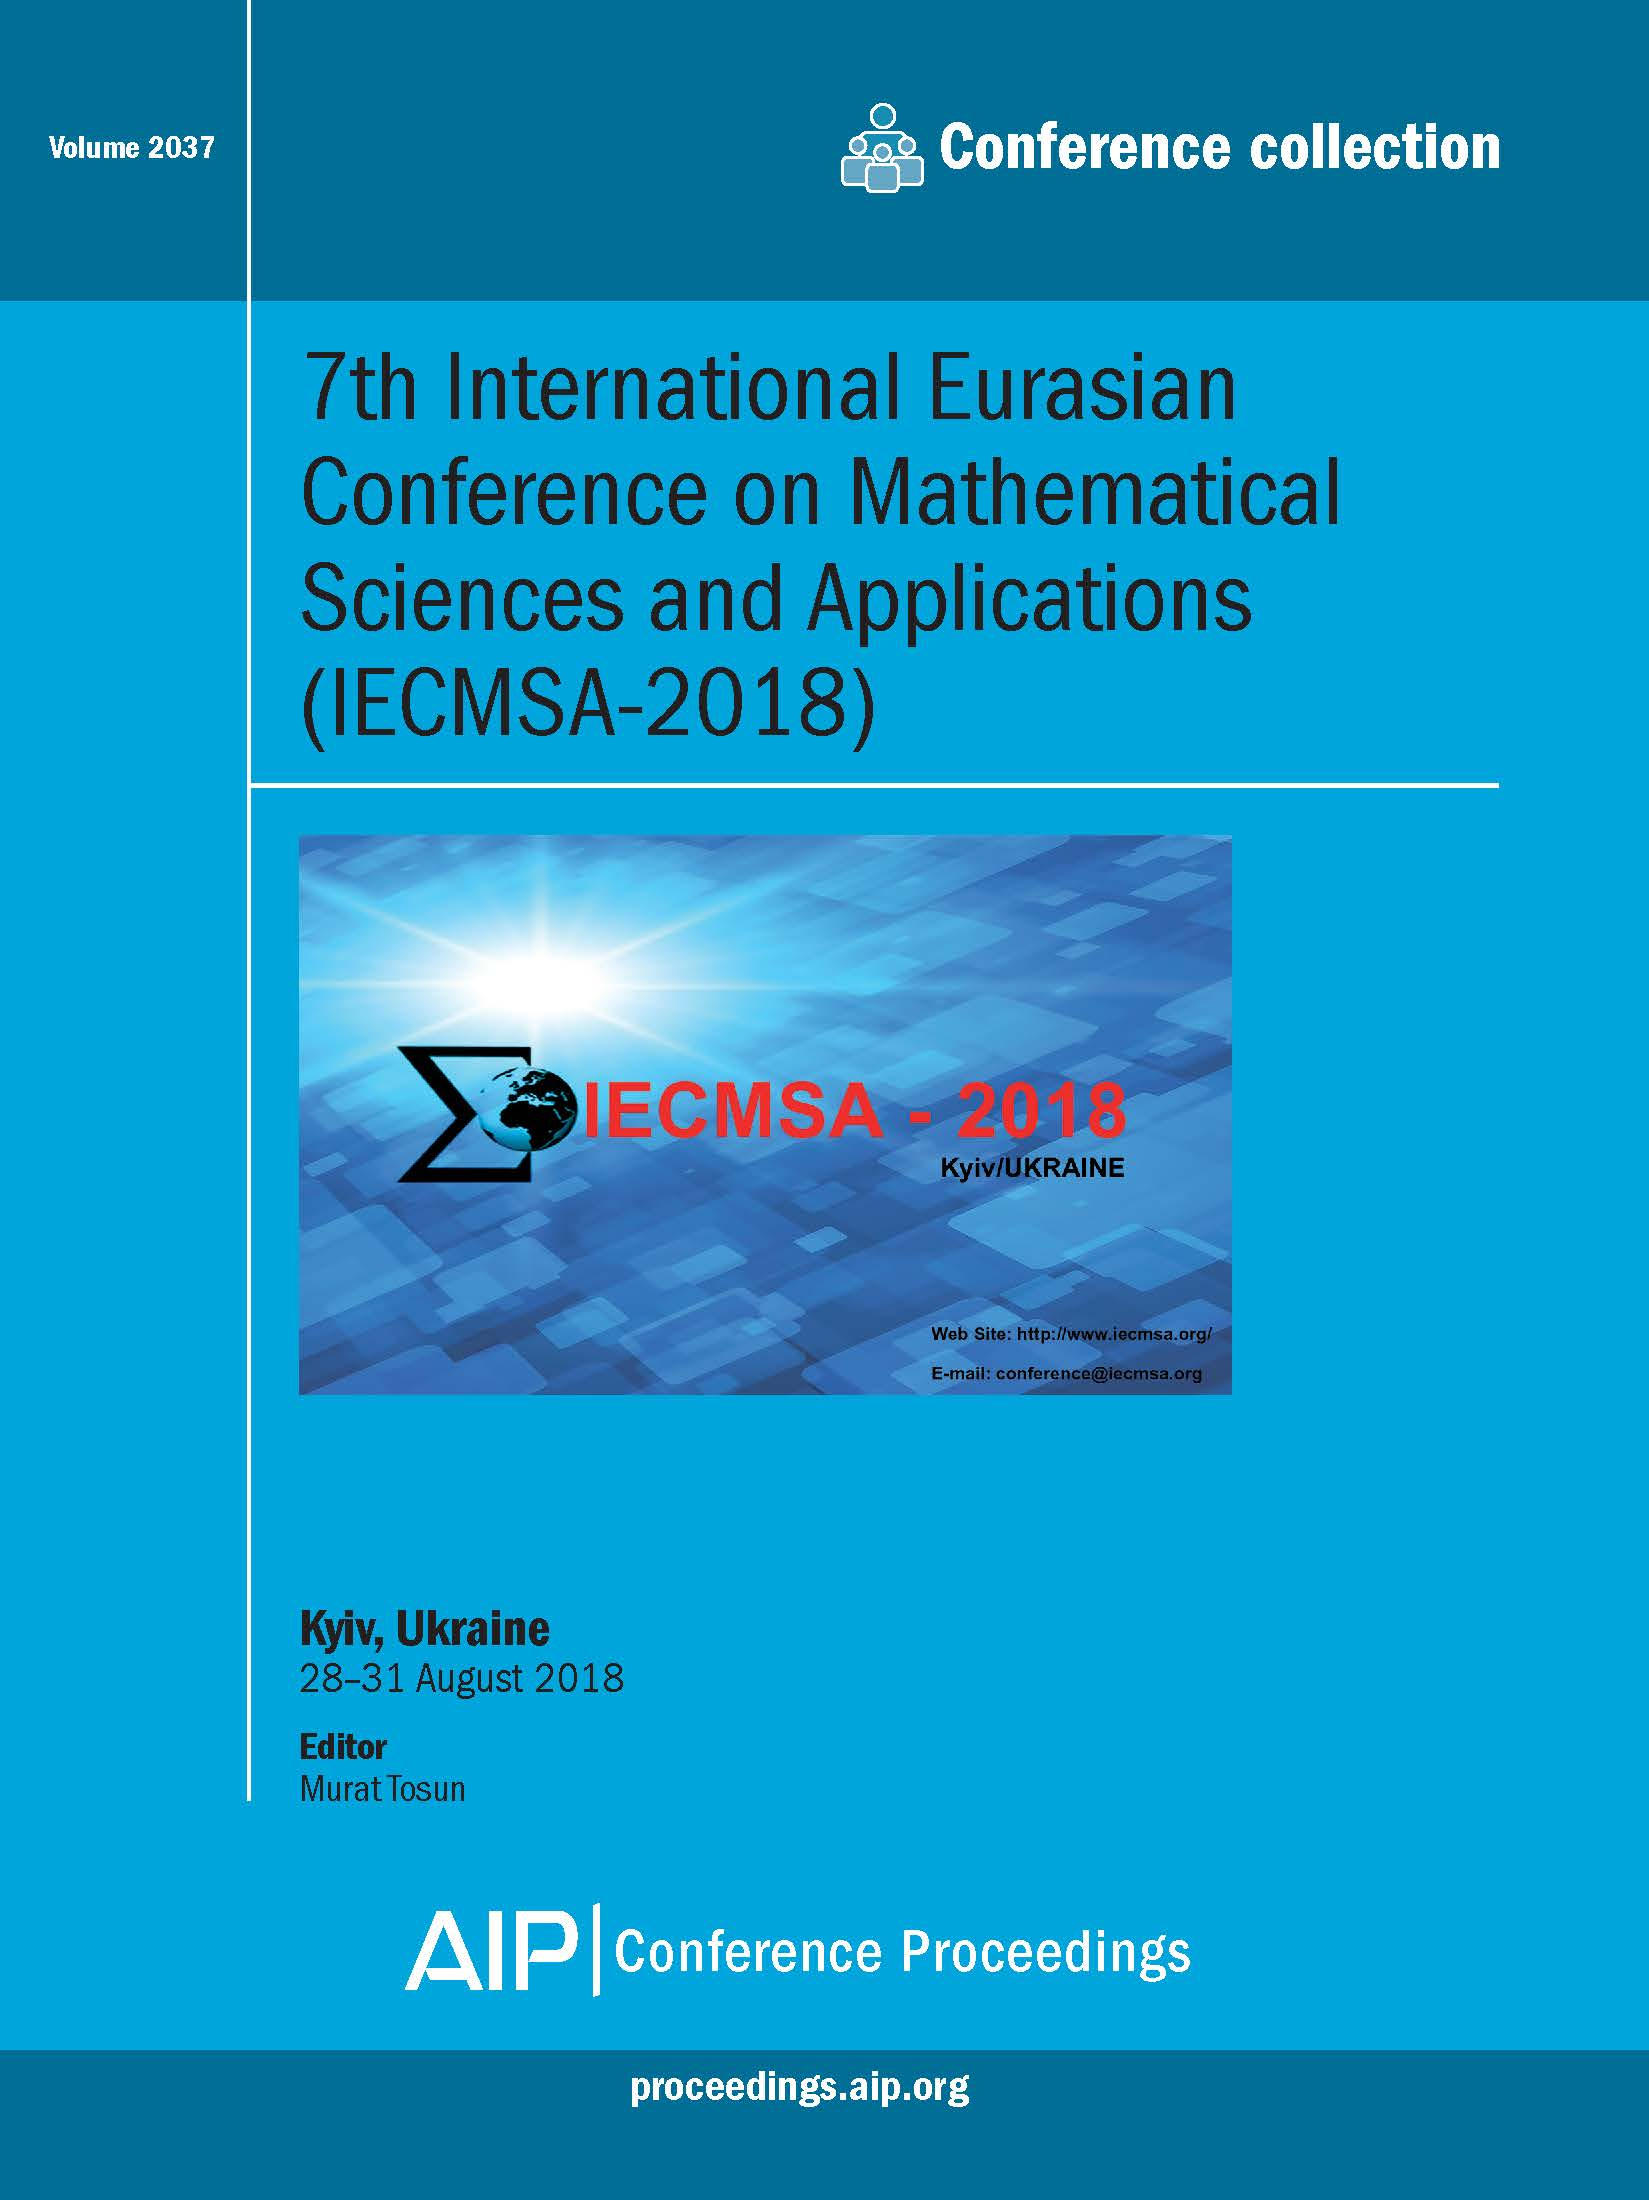 Volume 2037: 7th International Eurasian Conference on Mathematical Sciences  and Applications (IECMSA-2018)